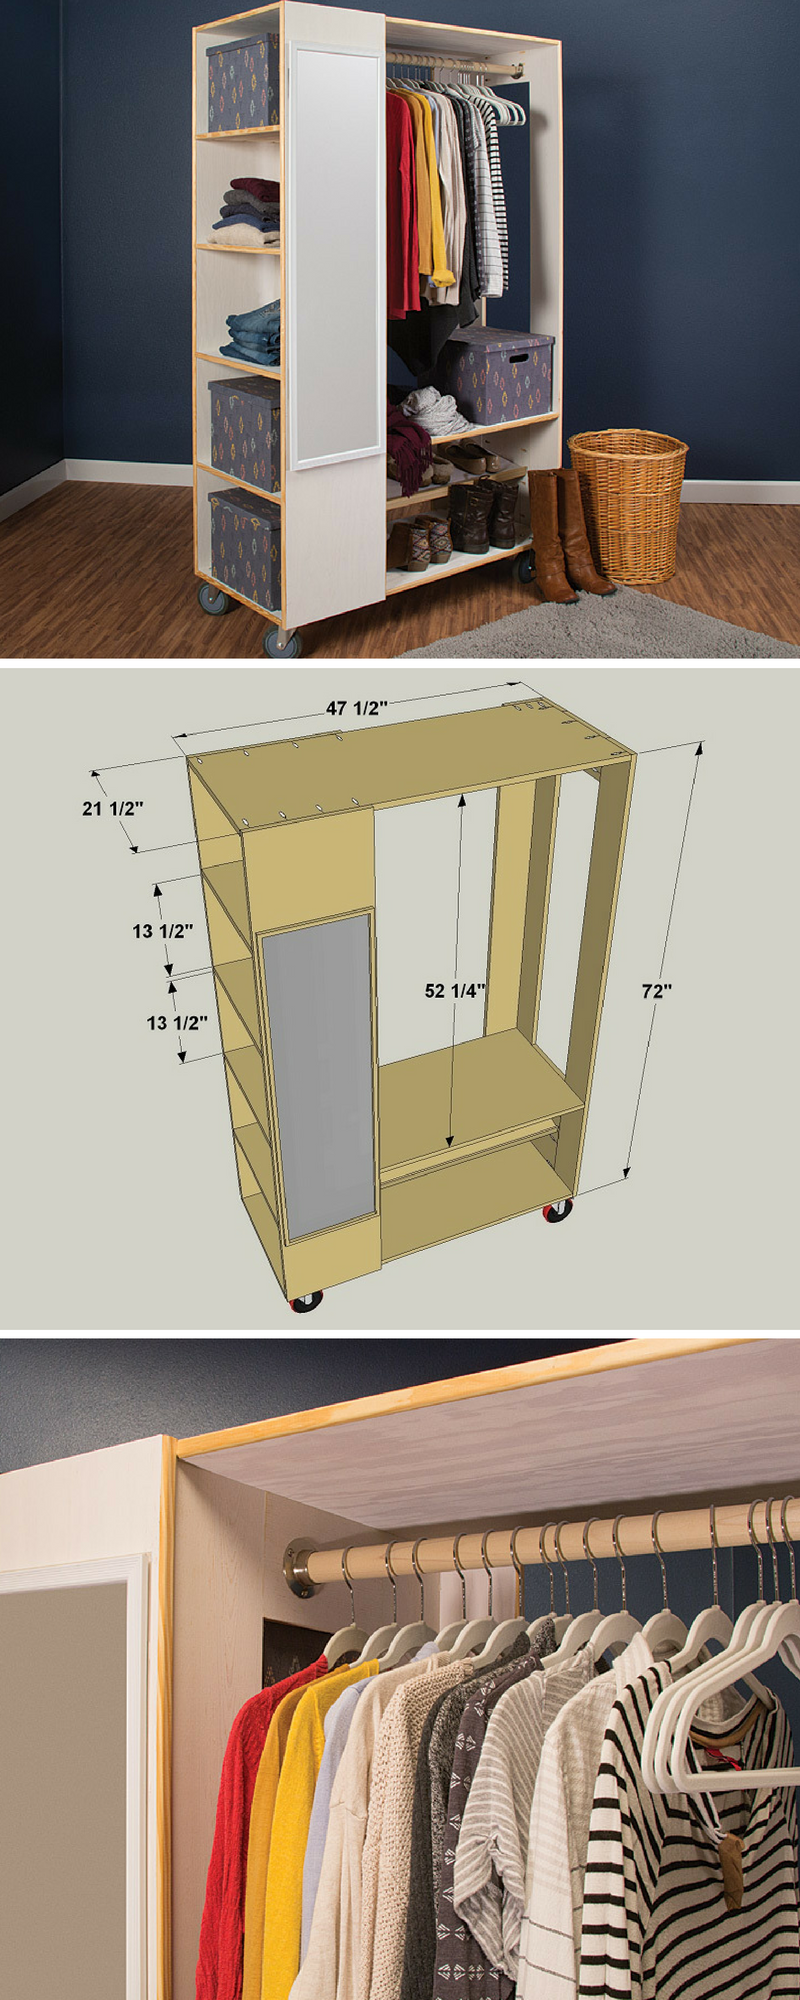 How To Build A DIY Freestanding Closet System